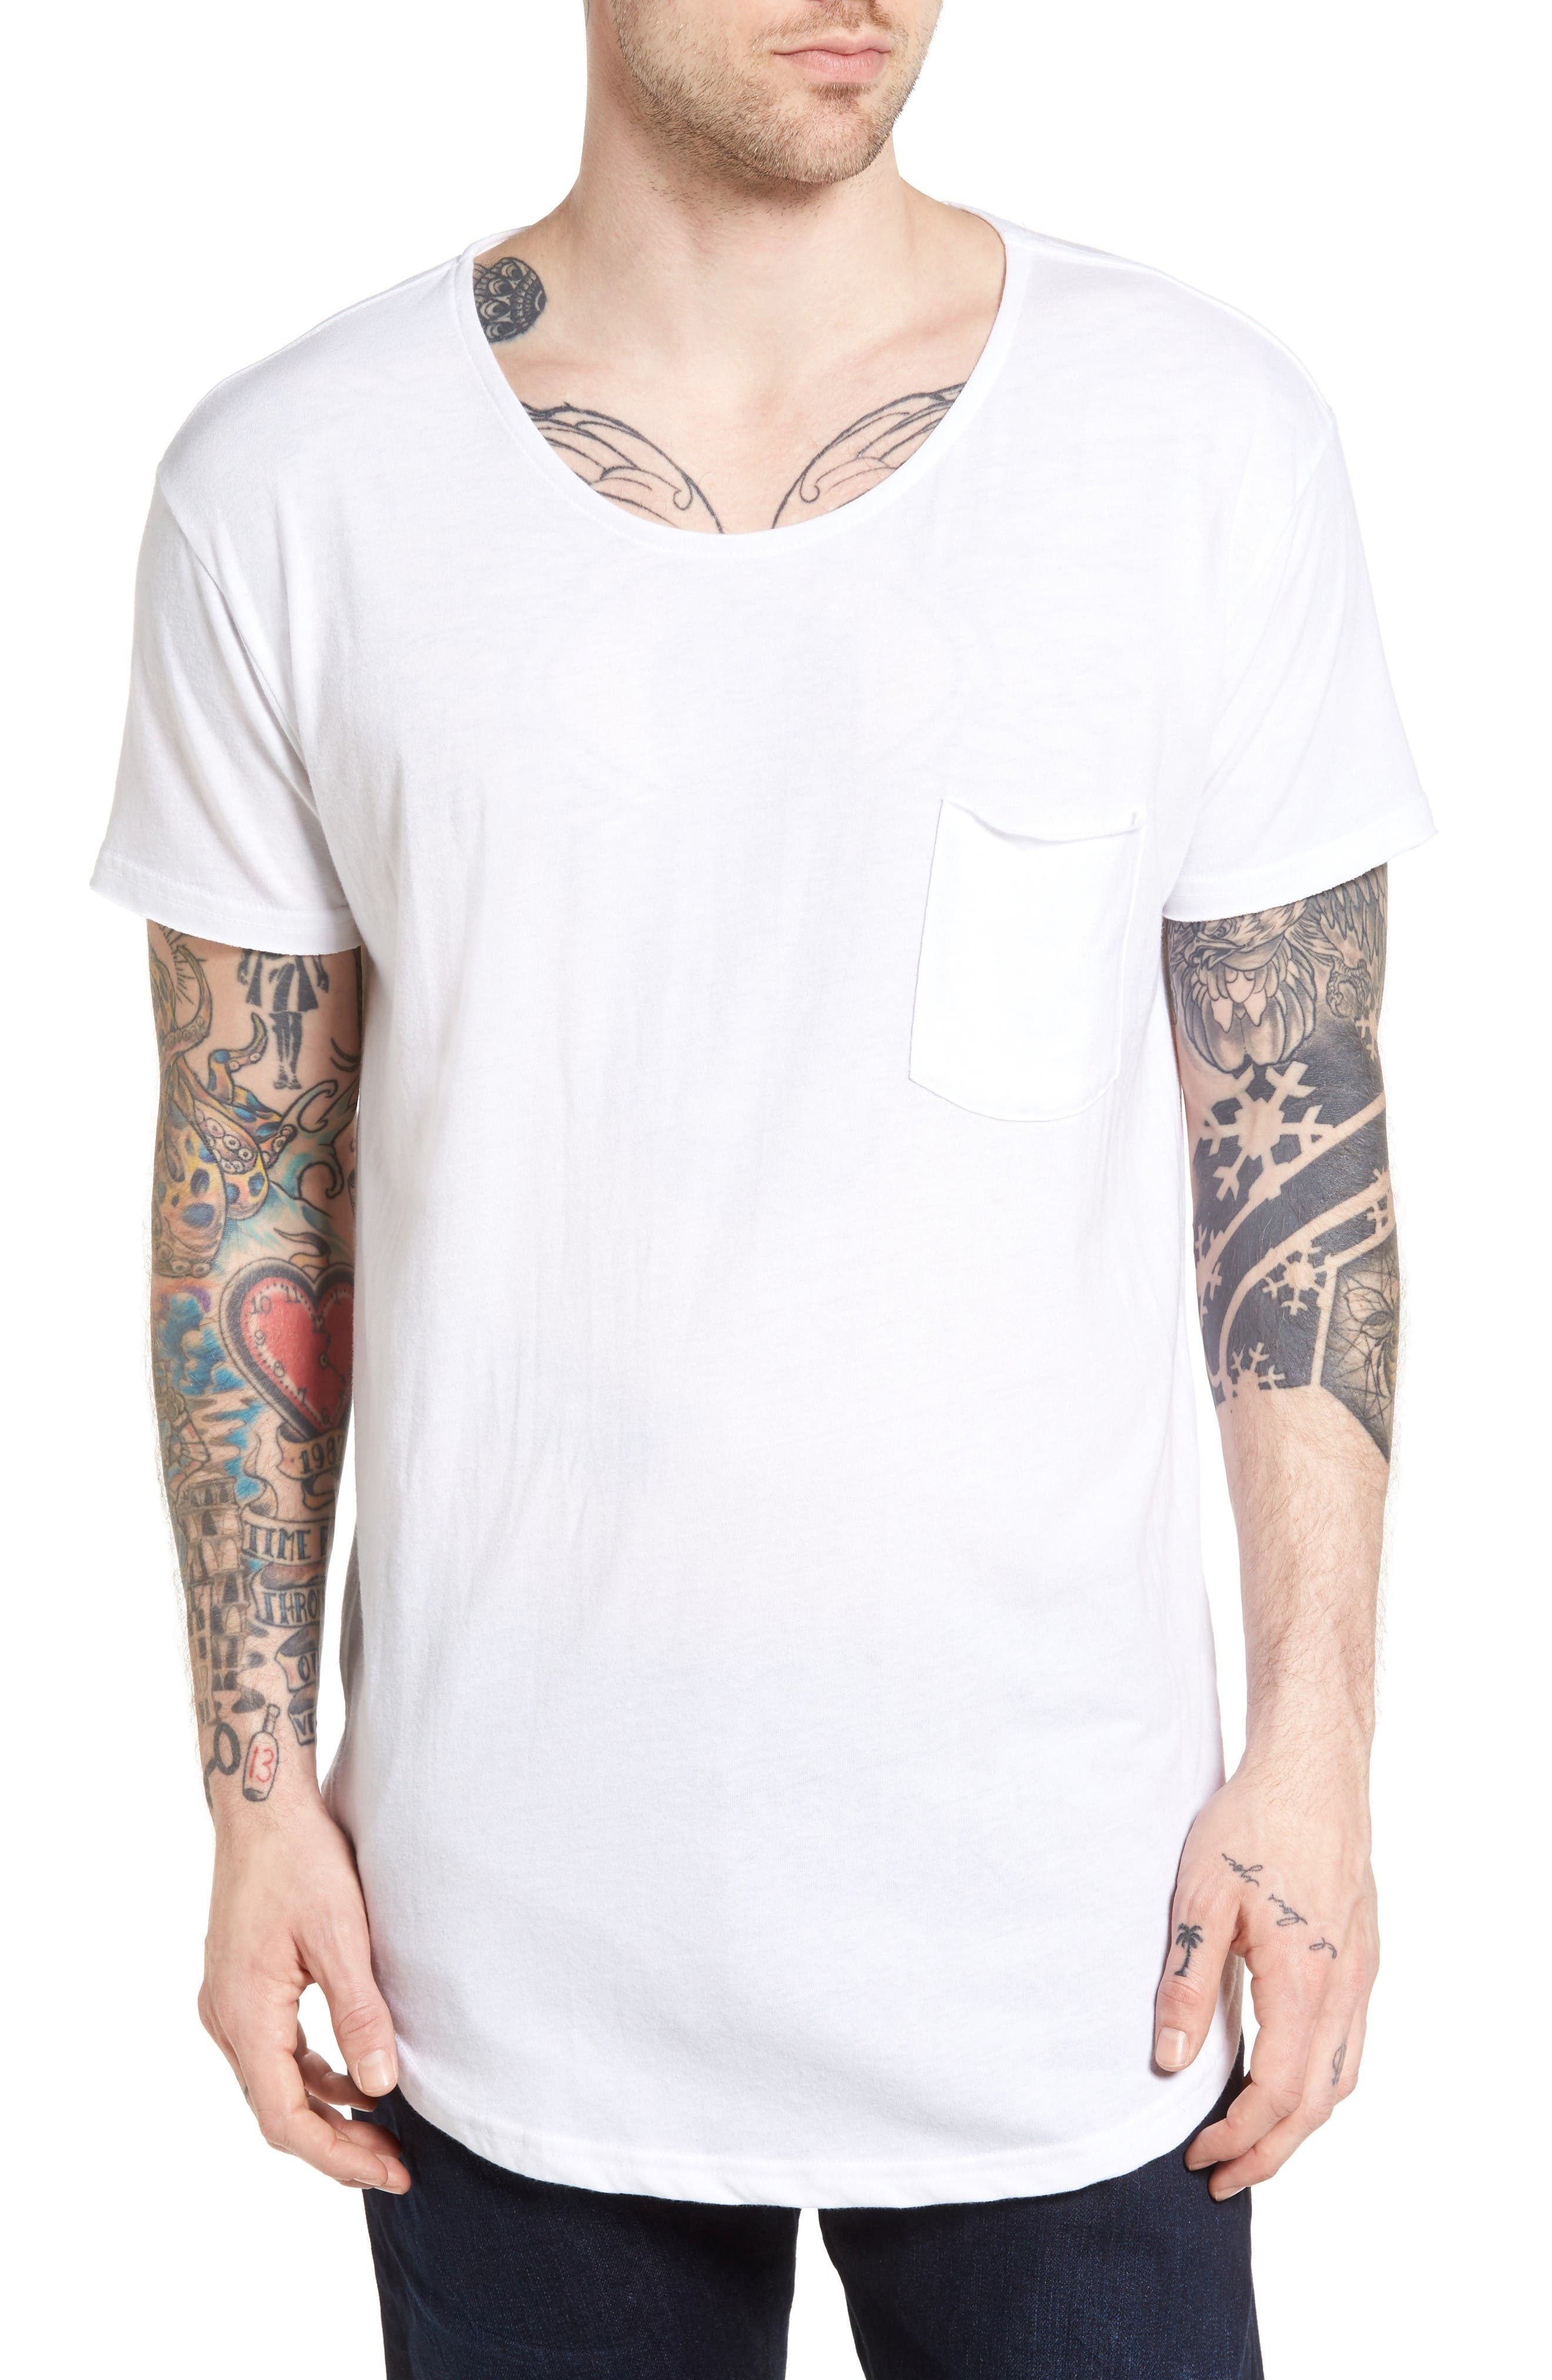 The Rail Longline Scallop T-Shirt